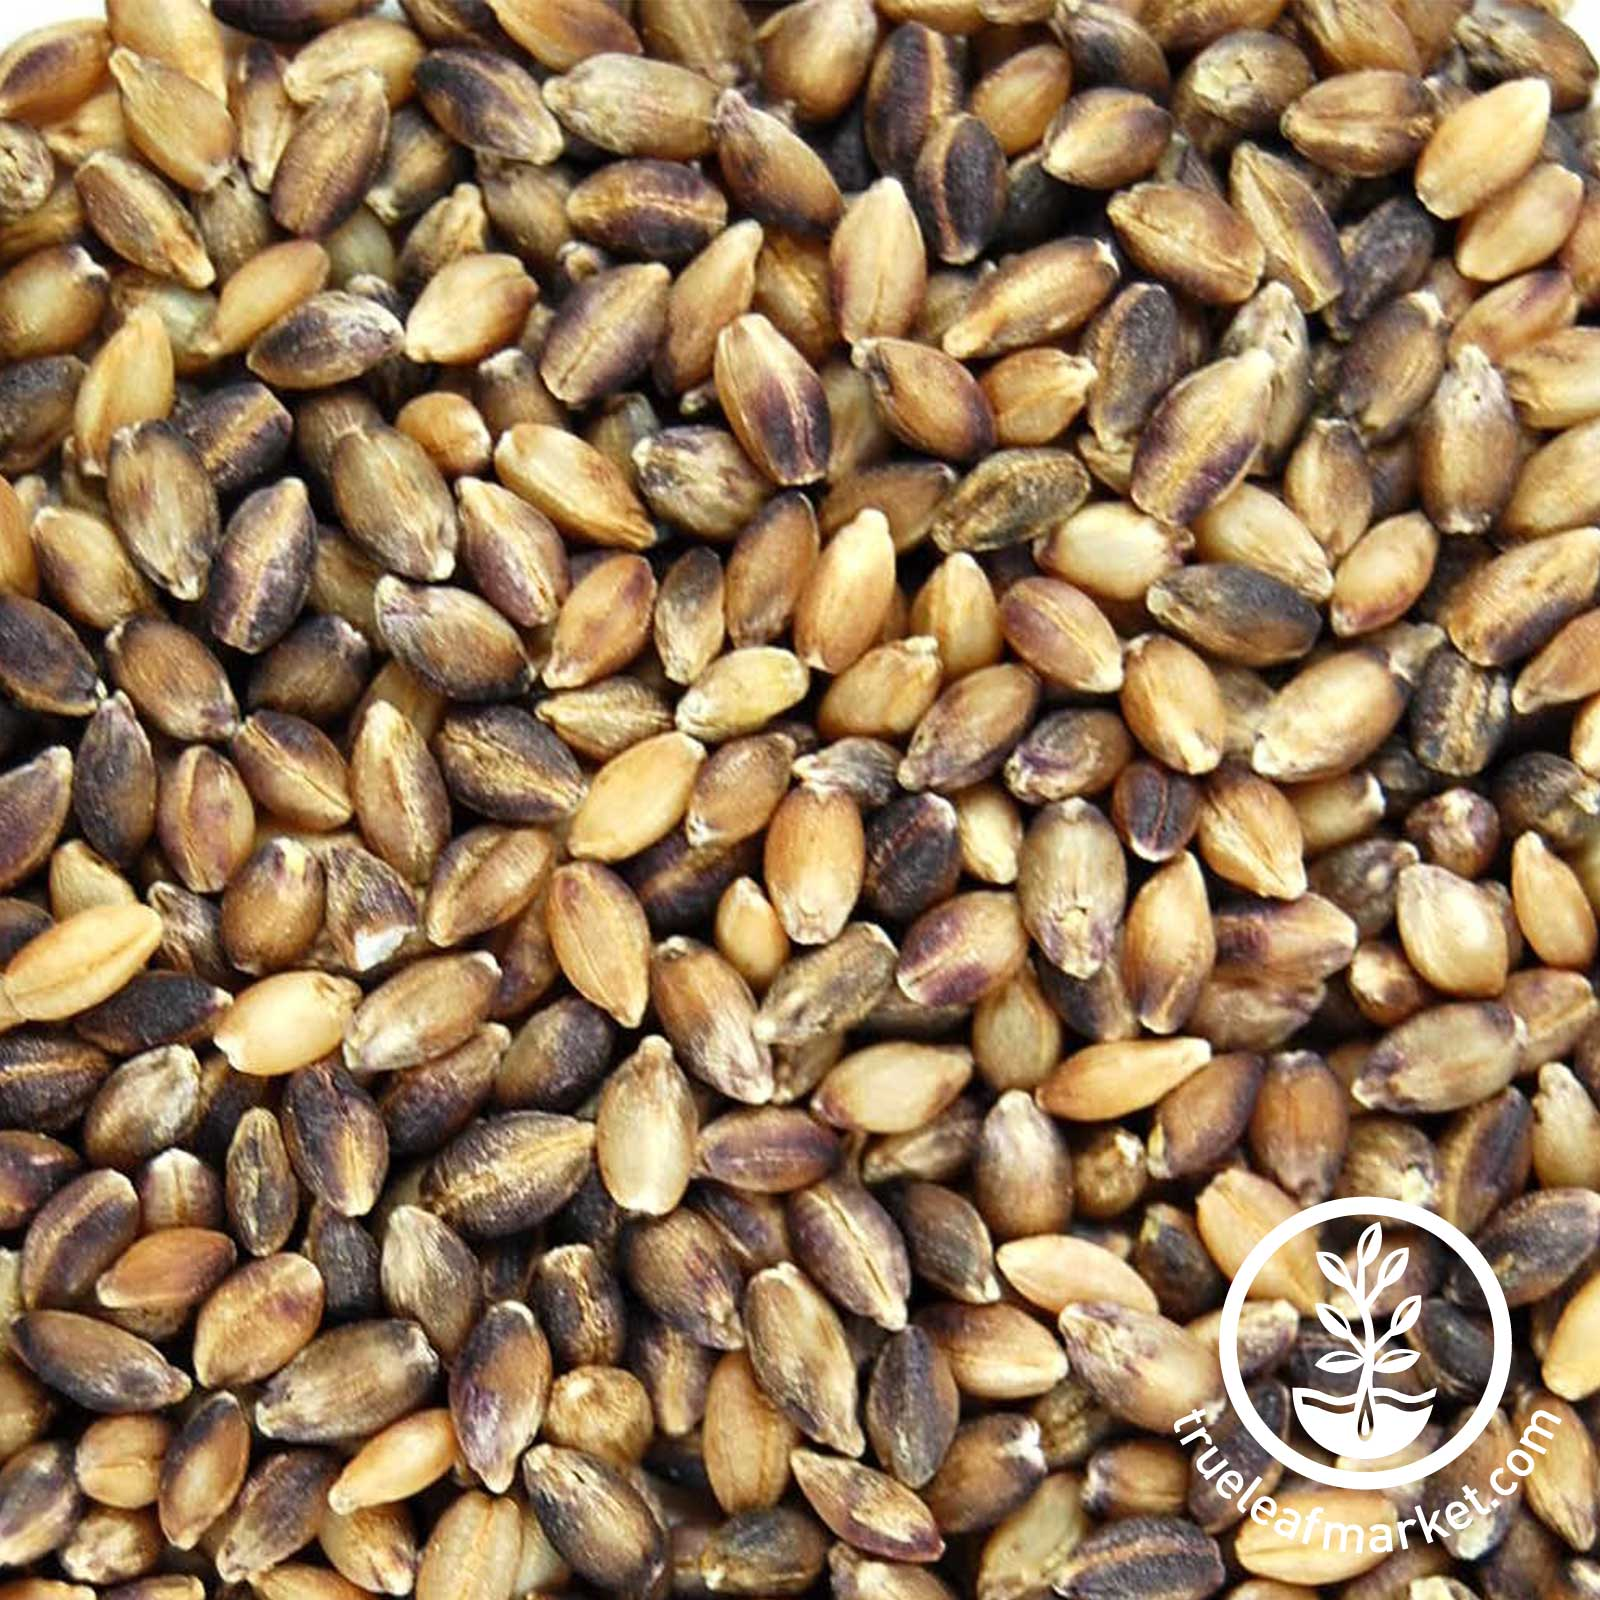 Barley Seed Purple: Organic - No Hull sprouting seed, hulless barley, hulled barley, purple barley, organic